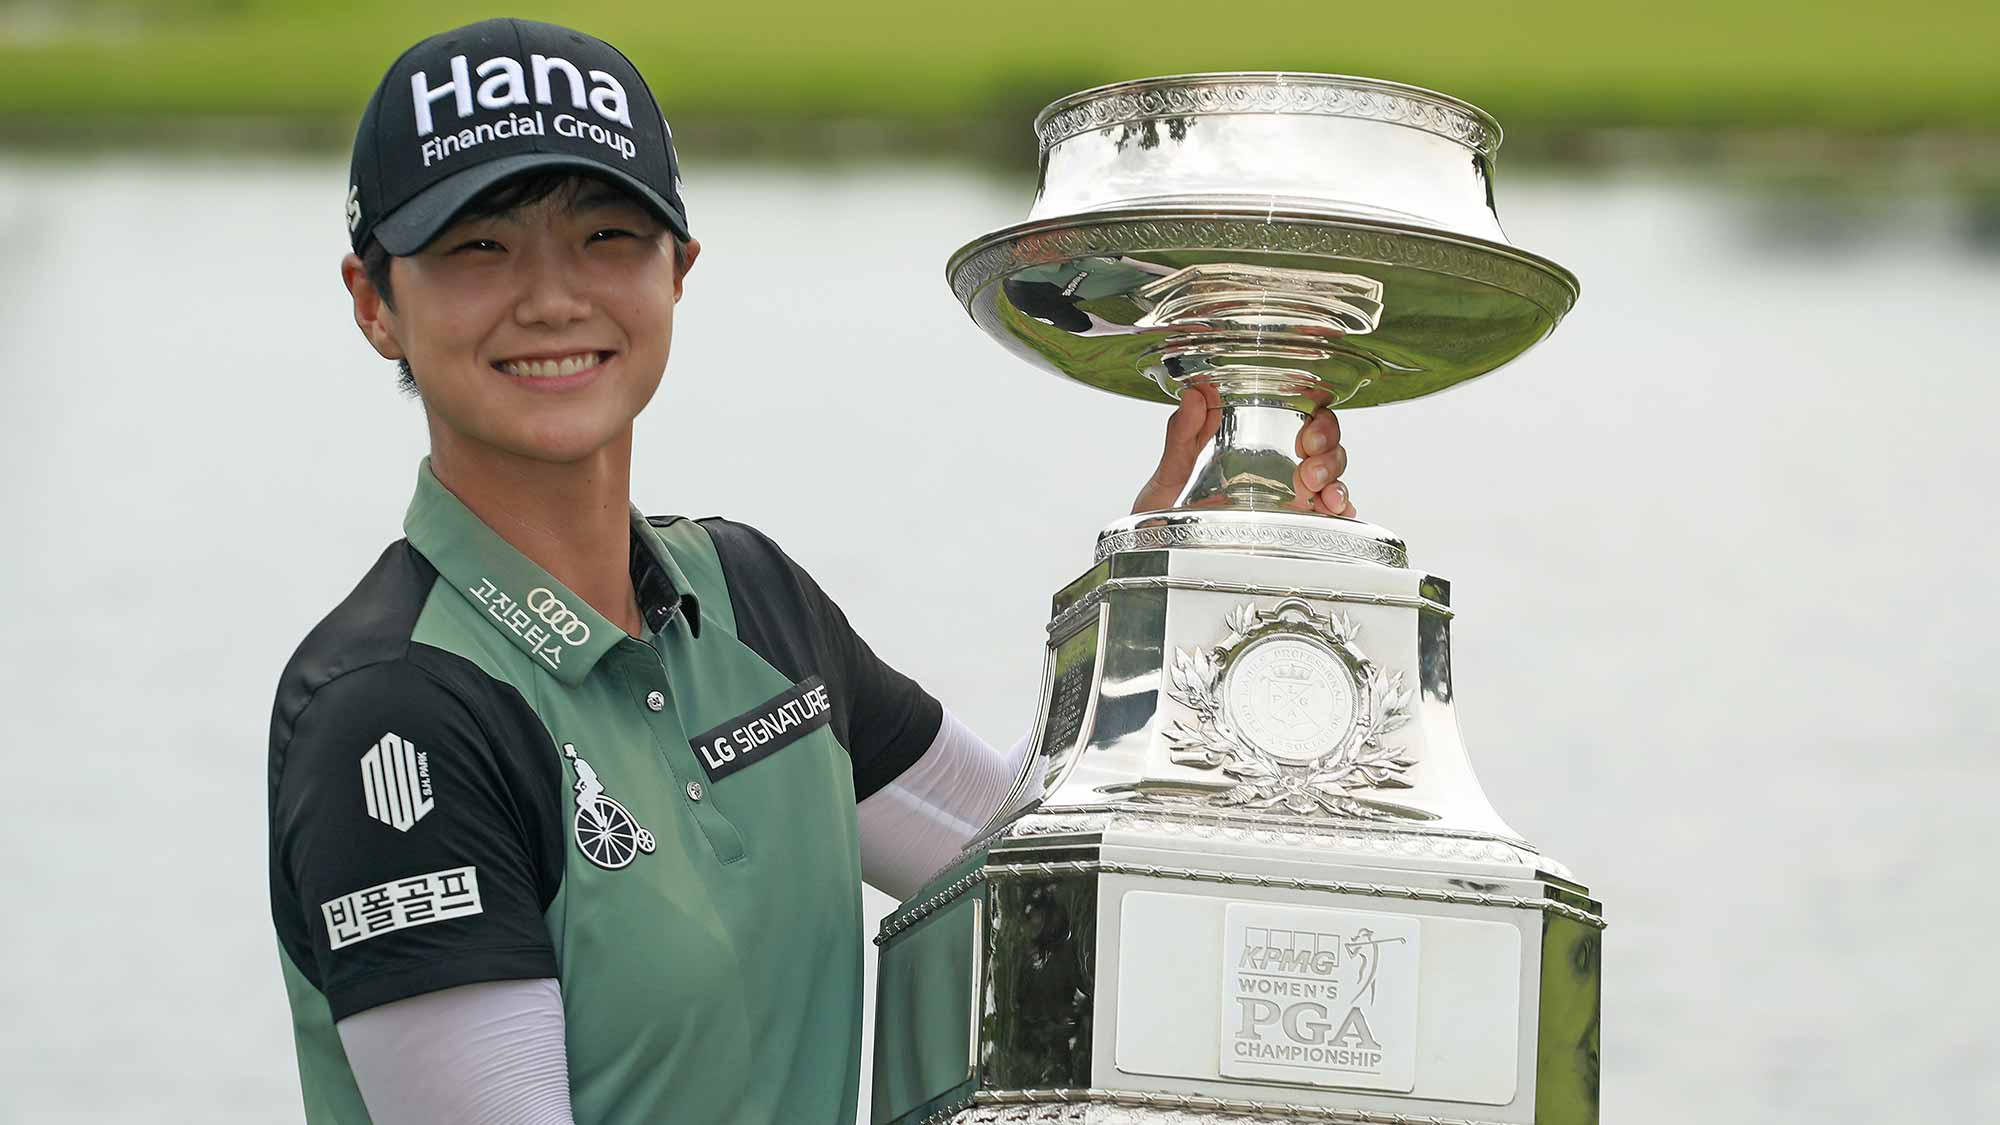 2018 Kpmg Womens Pga Championship Winner Completes Cabinet Of Major